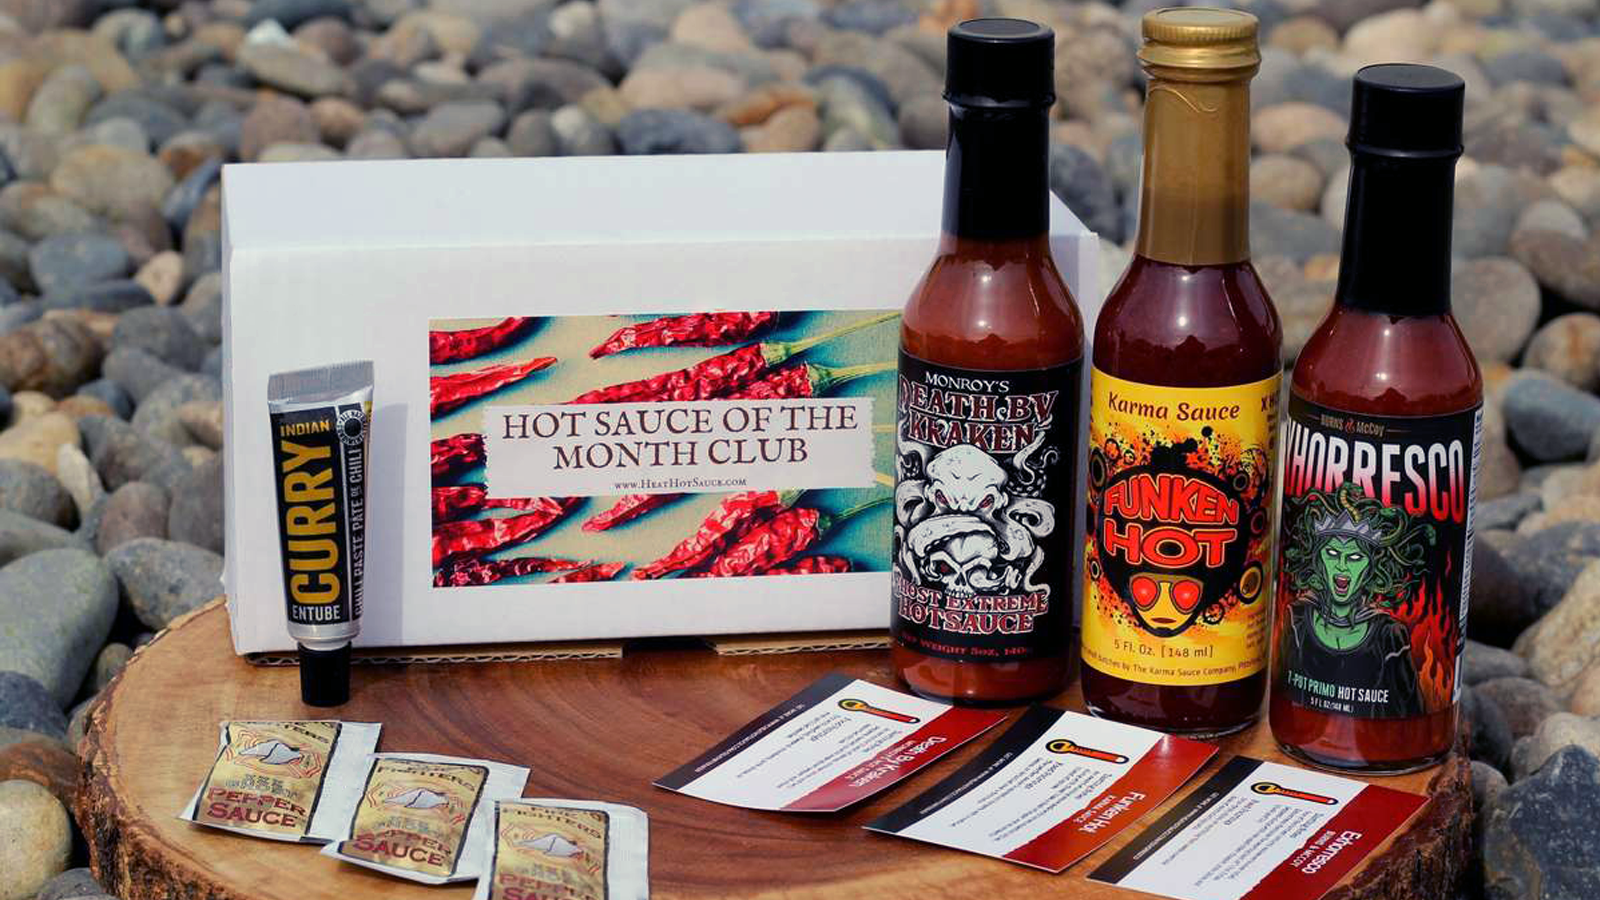 Heat Hot Sauce Shop subscription box with bottles of sauce and information cards